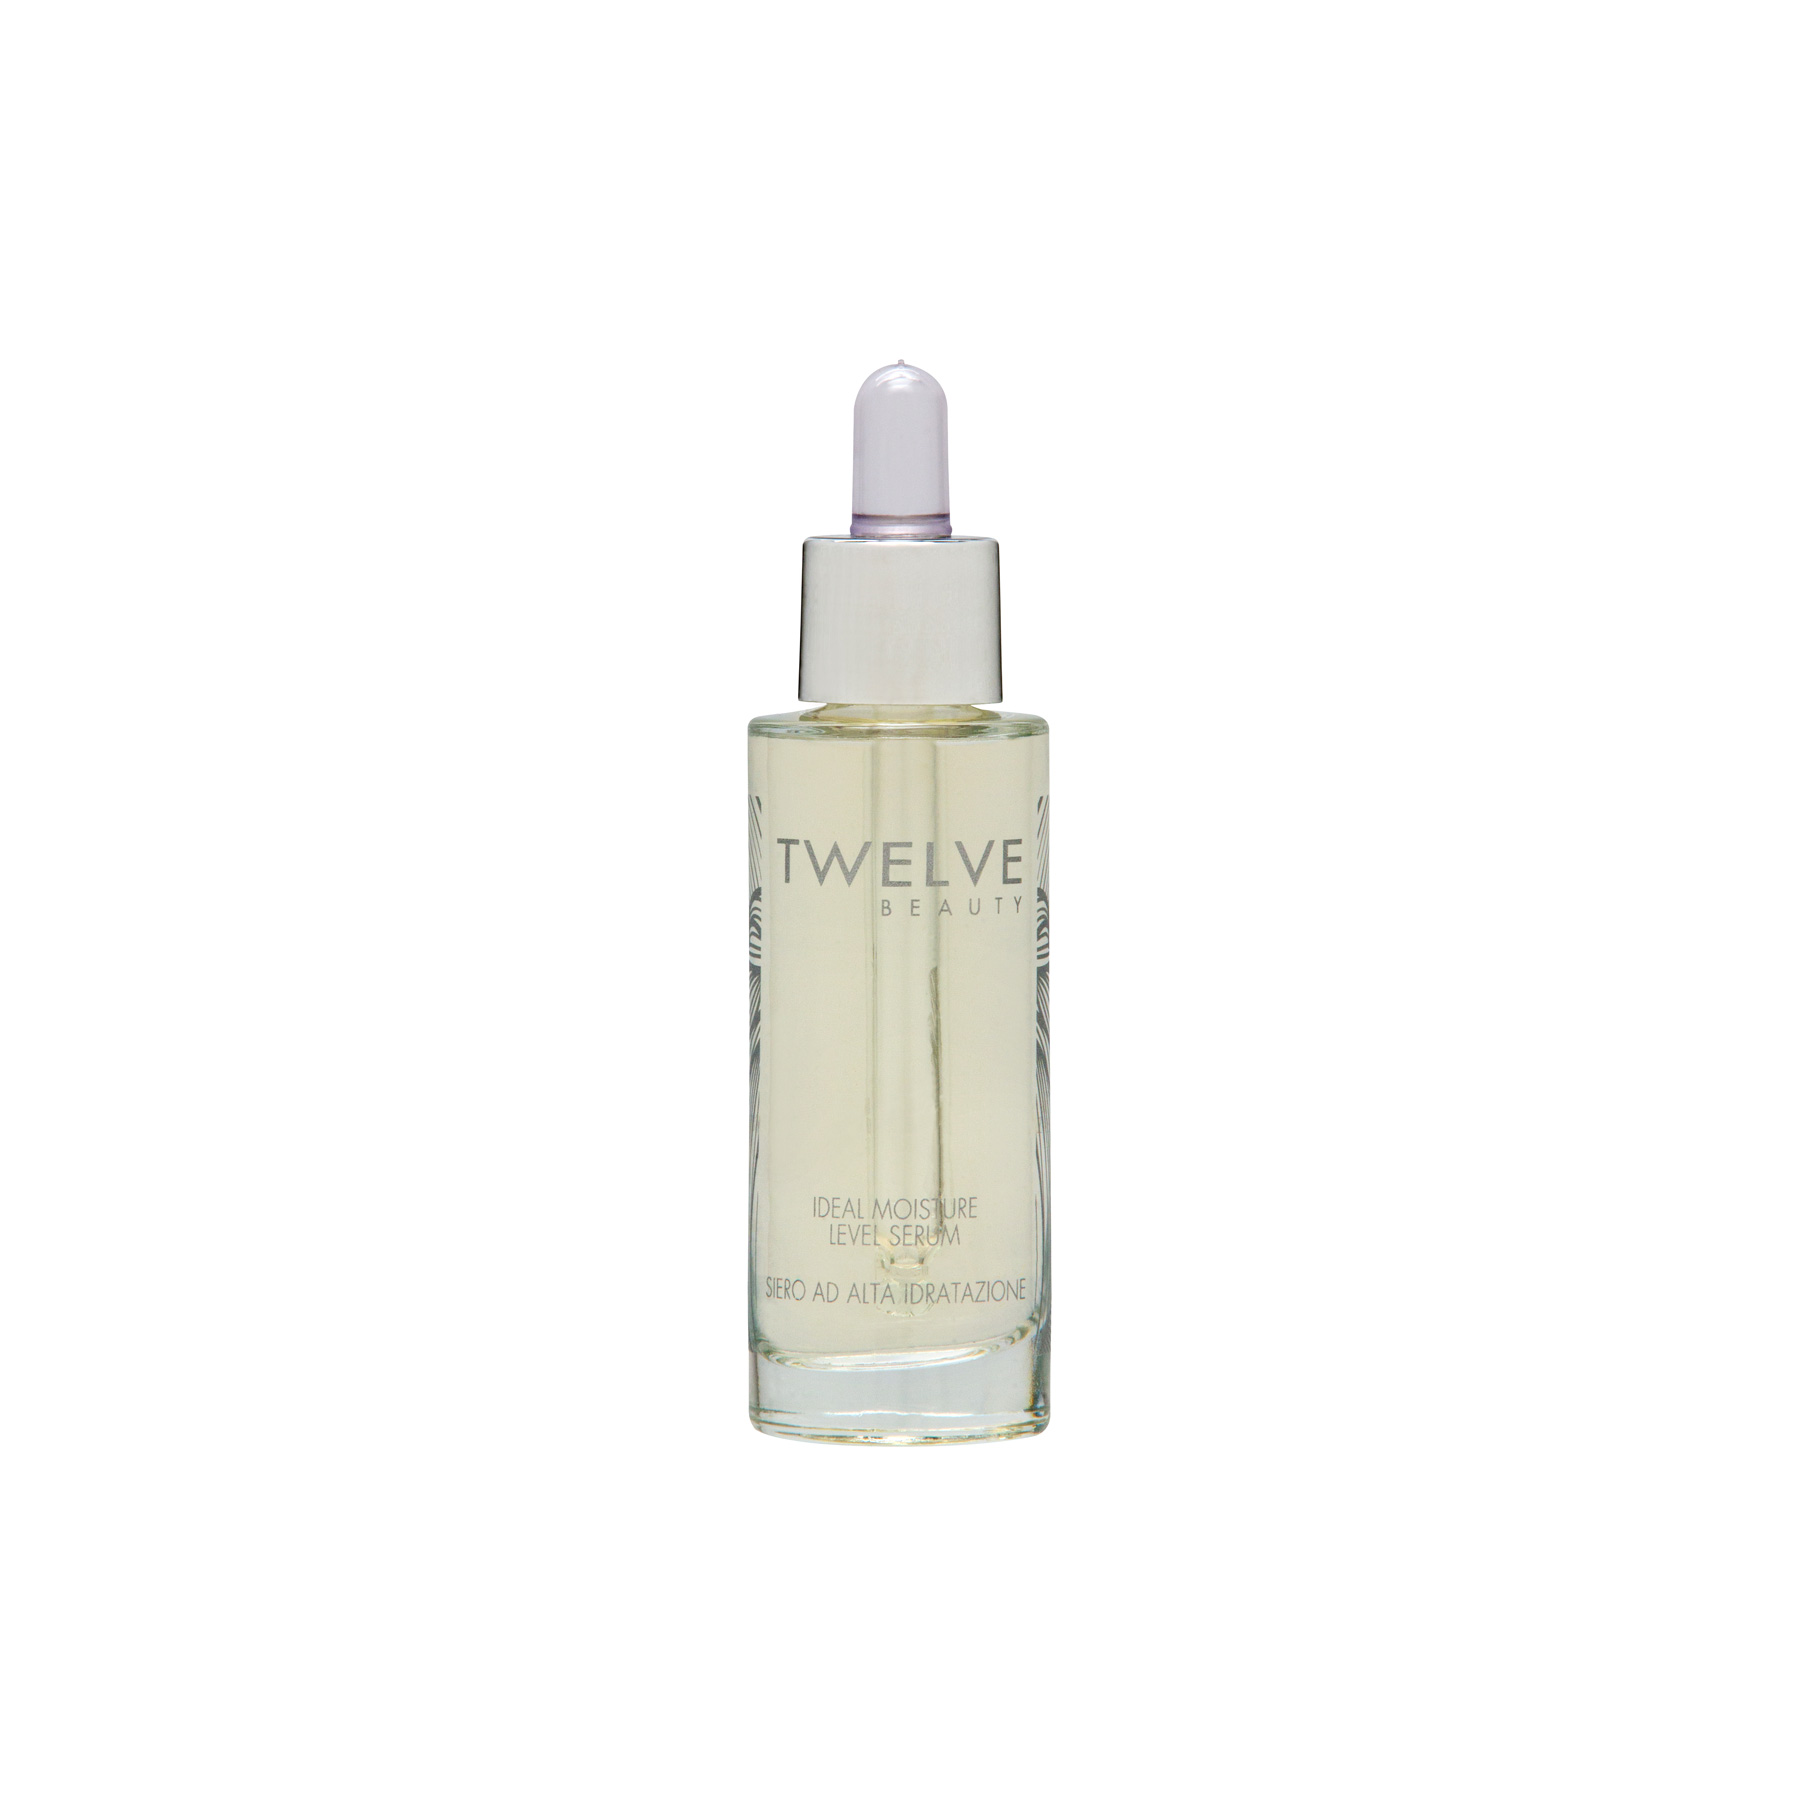 Ideal Moisture Level Serum - $68   Hydrating serum  Hyaluronic acid serum with B5 hydrates and builds moisture from within. Softens look of fine lines.